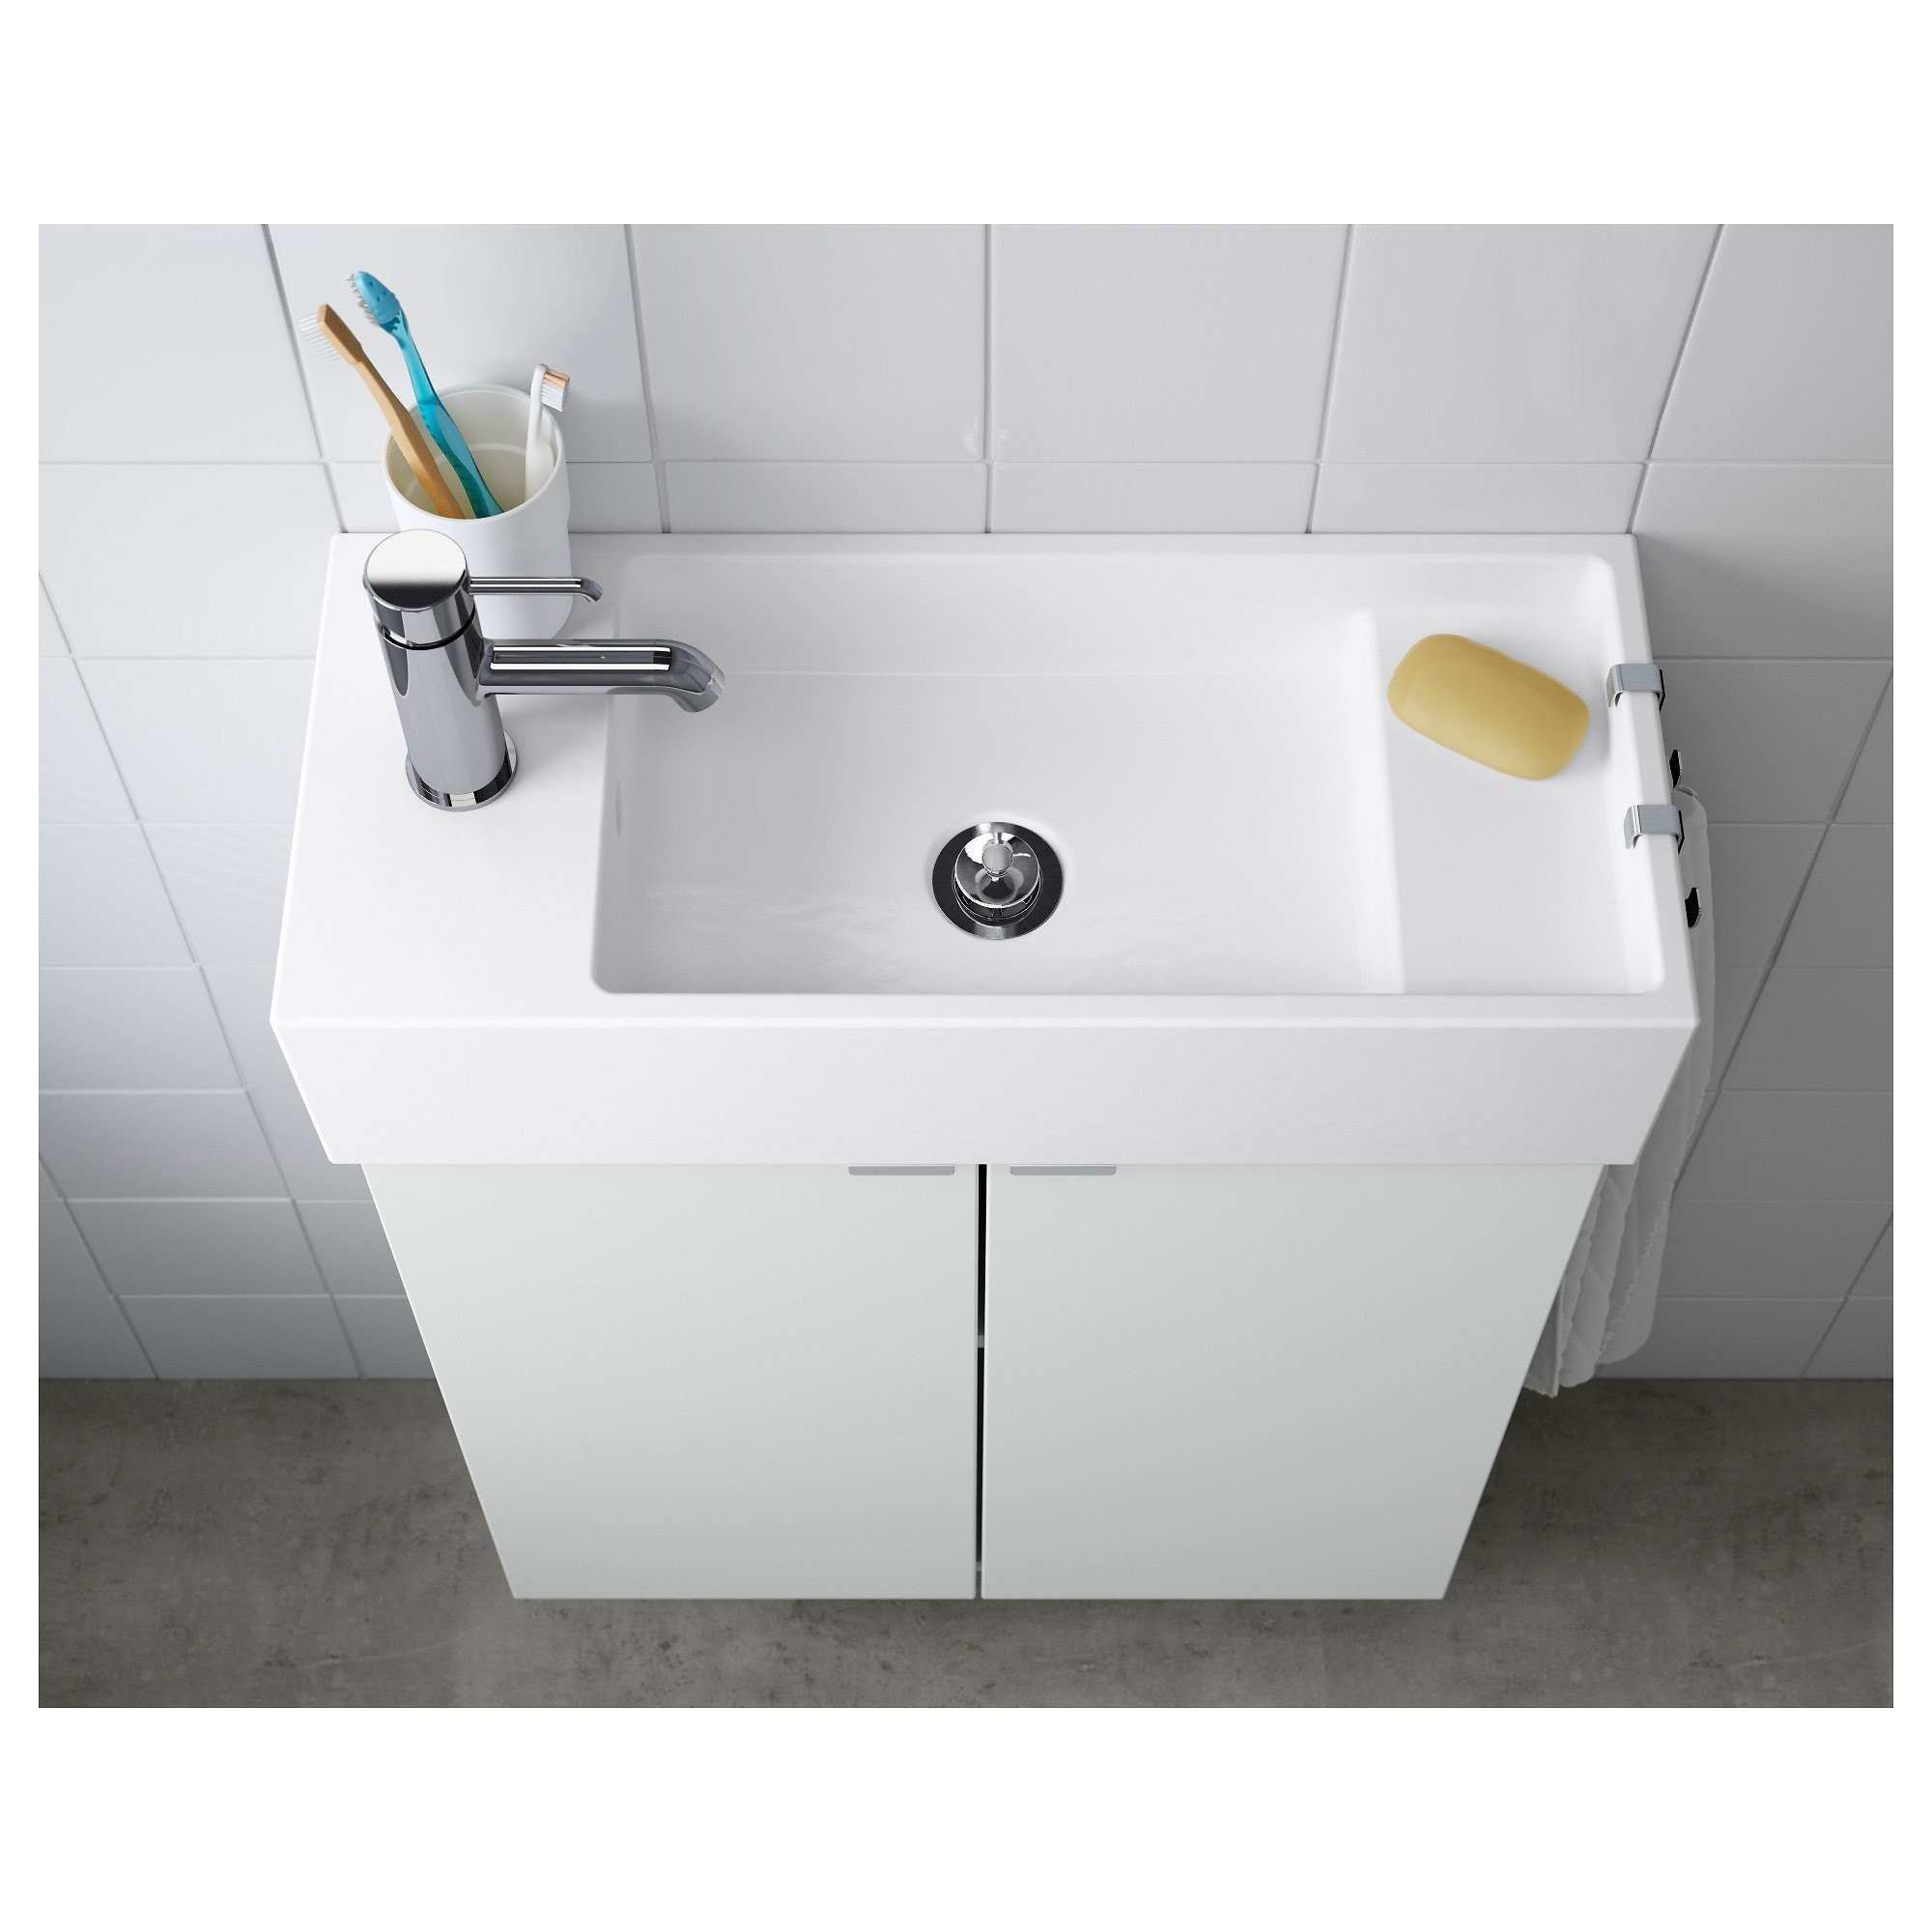 Cheap Small Bathroom Sinks Fresh Pe S5h Sink Ikea Small I 0d Awesome